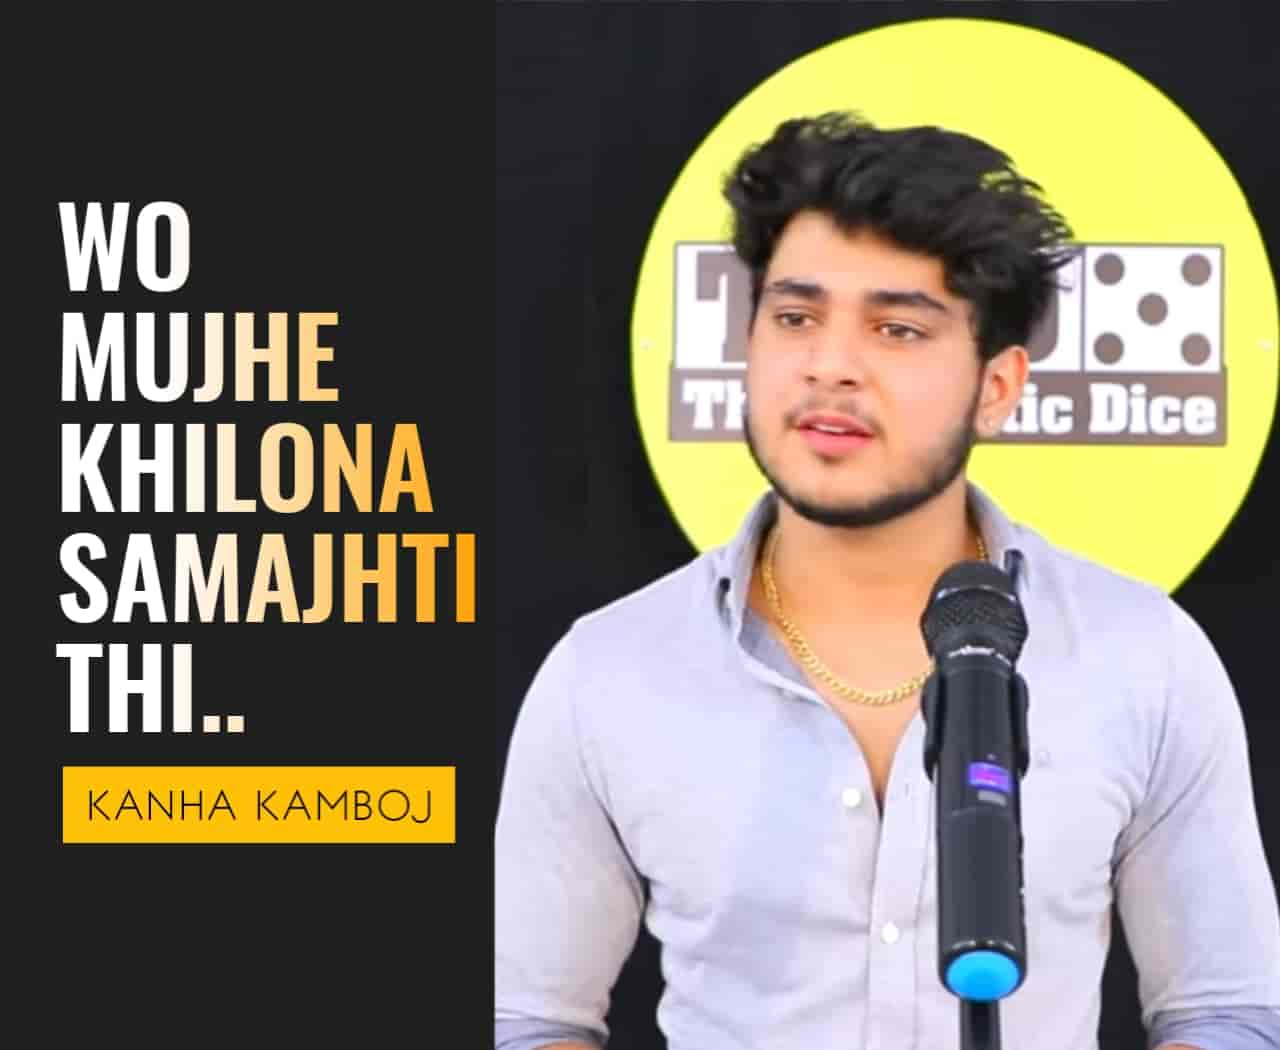 This beautiful Poetry  'Wo Mujhe Khilona Samajhti Thi' for The Realistic Dice is performed by Kanha Kamboj and also written by him which is very beautiful a piece.